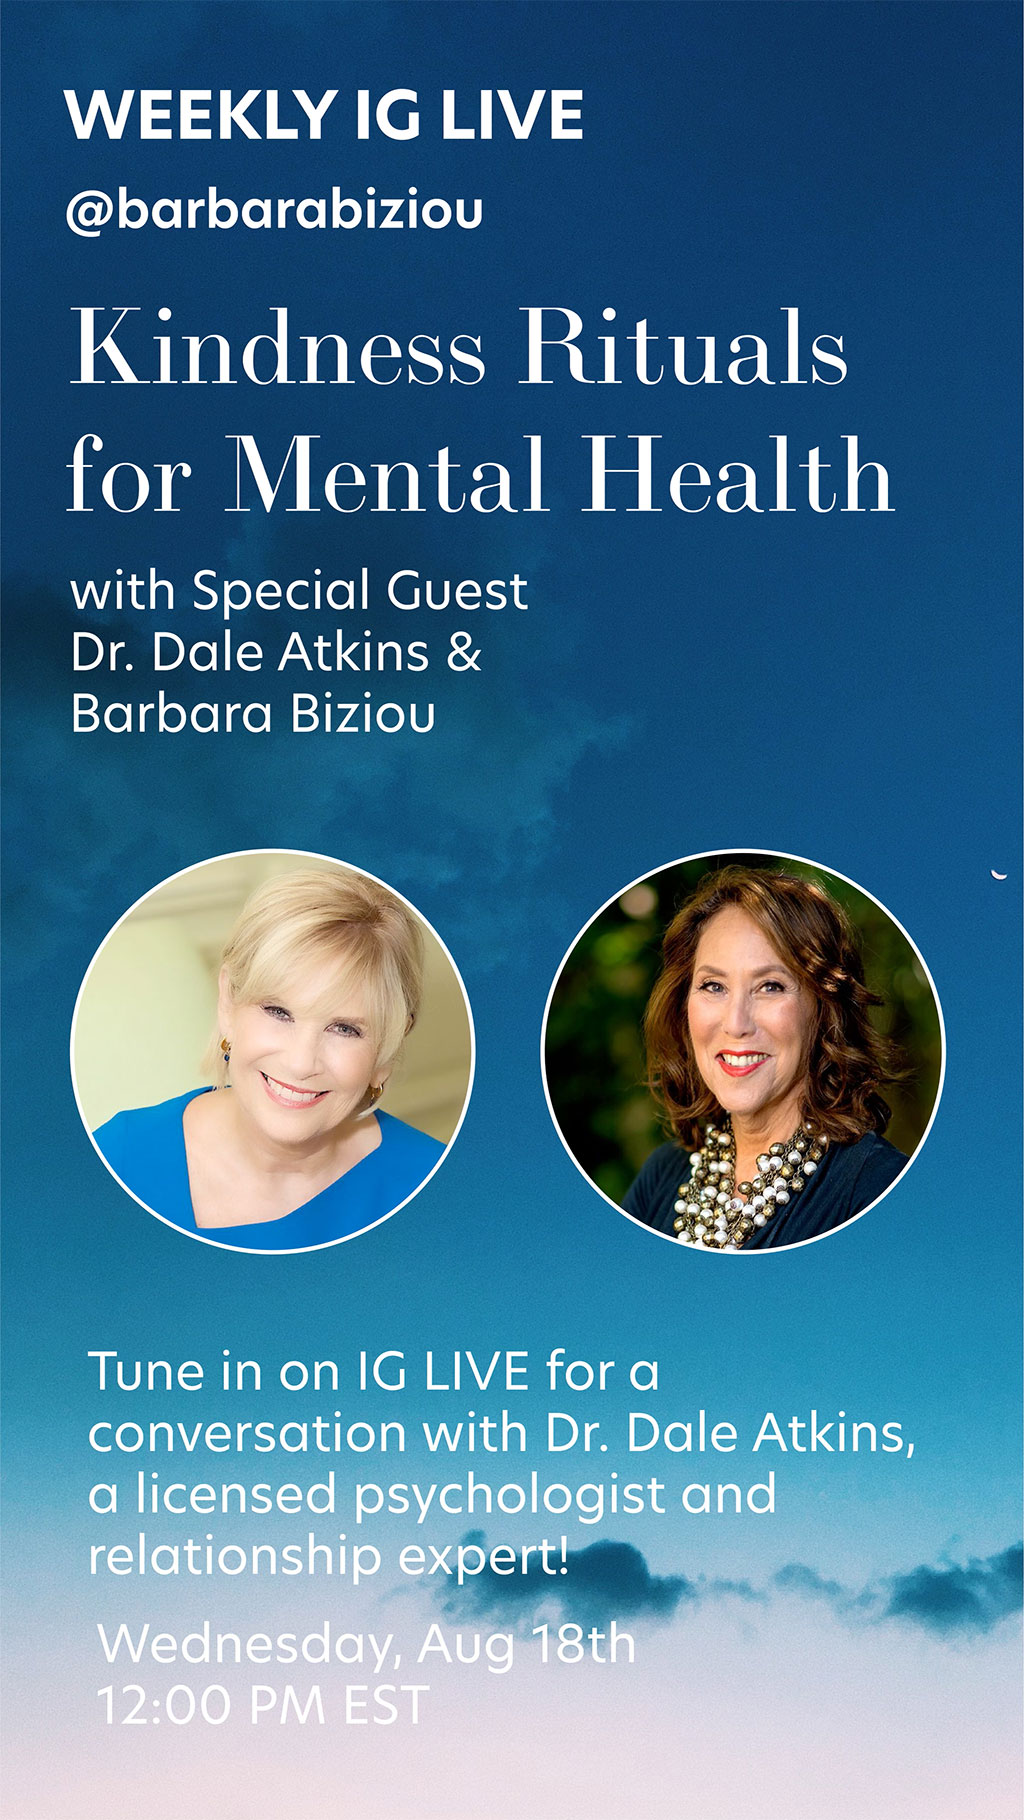 Kindness Rituals for Mental Health with Special Guest Dr. Dale Atkins & Barbara Biziou